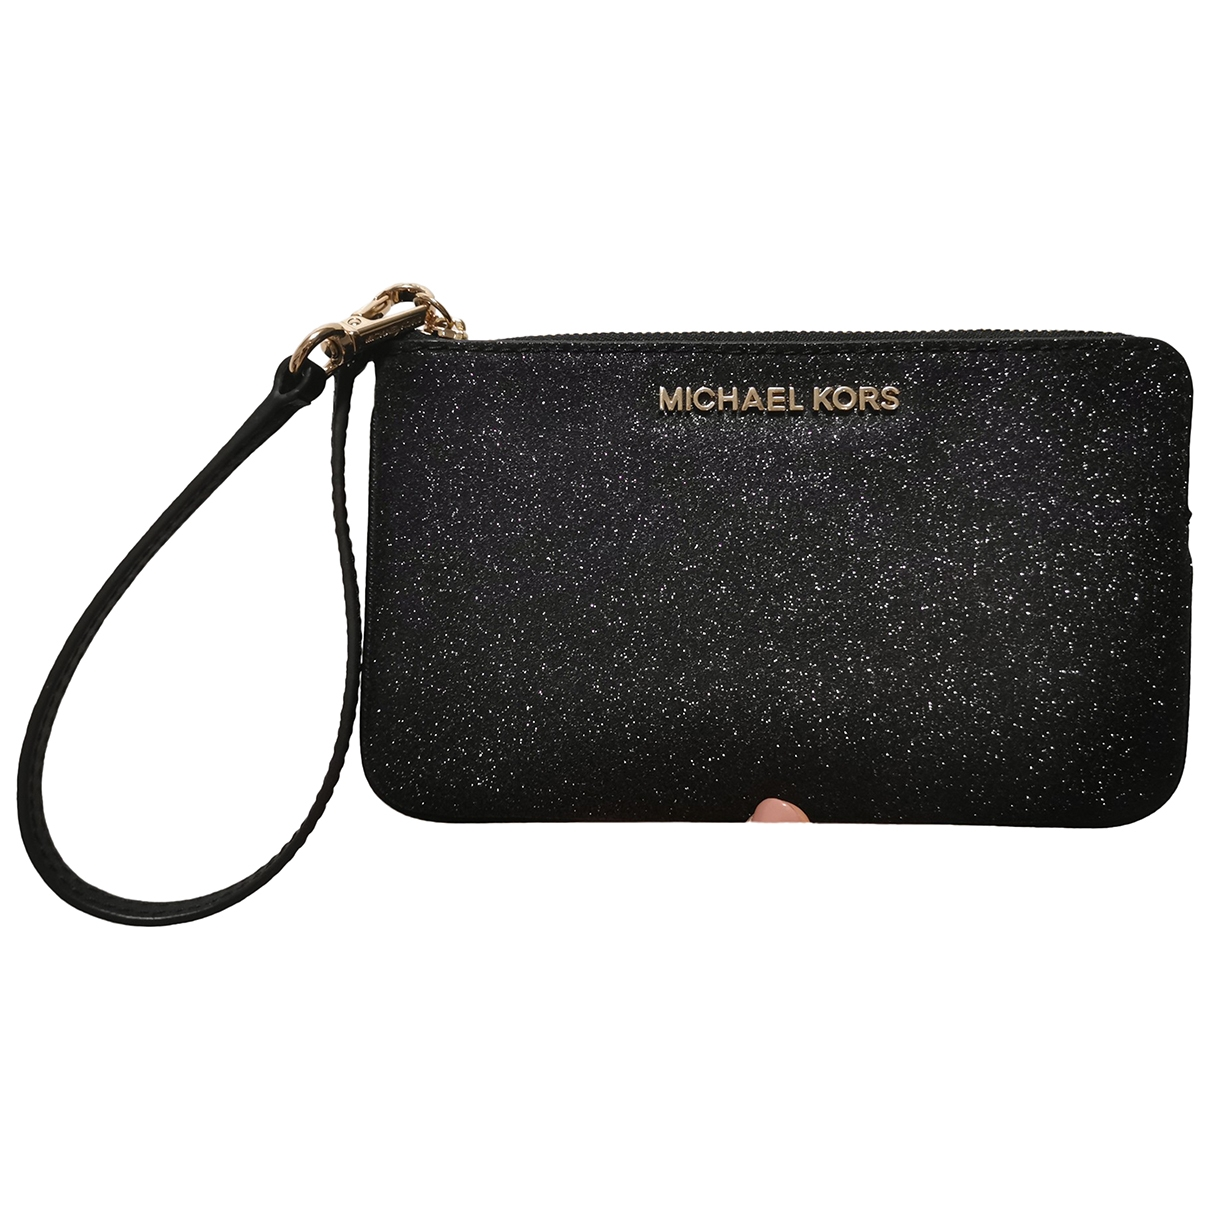 Michael Kors \N Clutch in  Schwarz Mit Pailletten